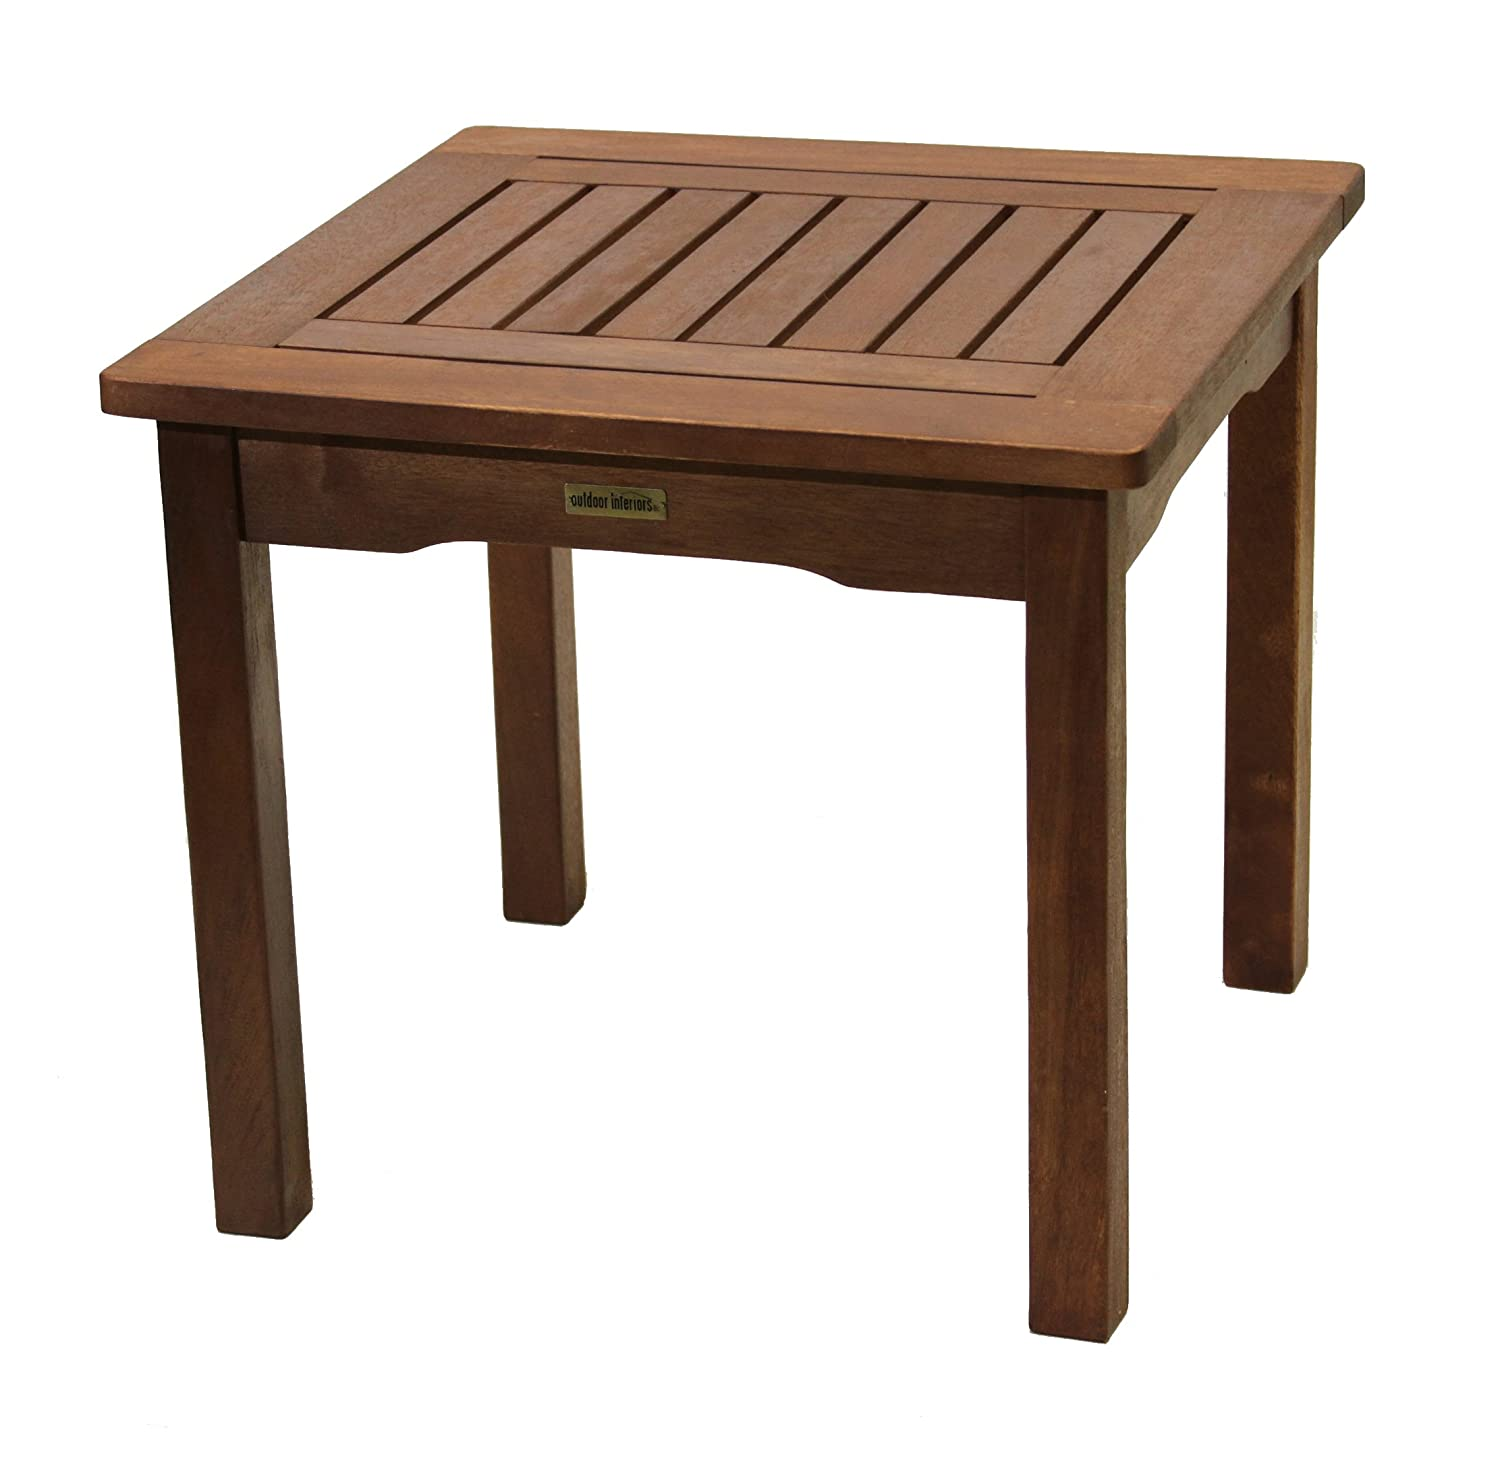 Porch Table All Weather End Table Eucalyptus Easy Assembly Garden